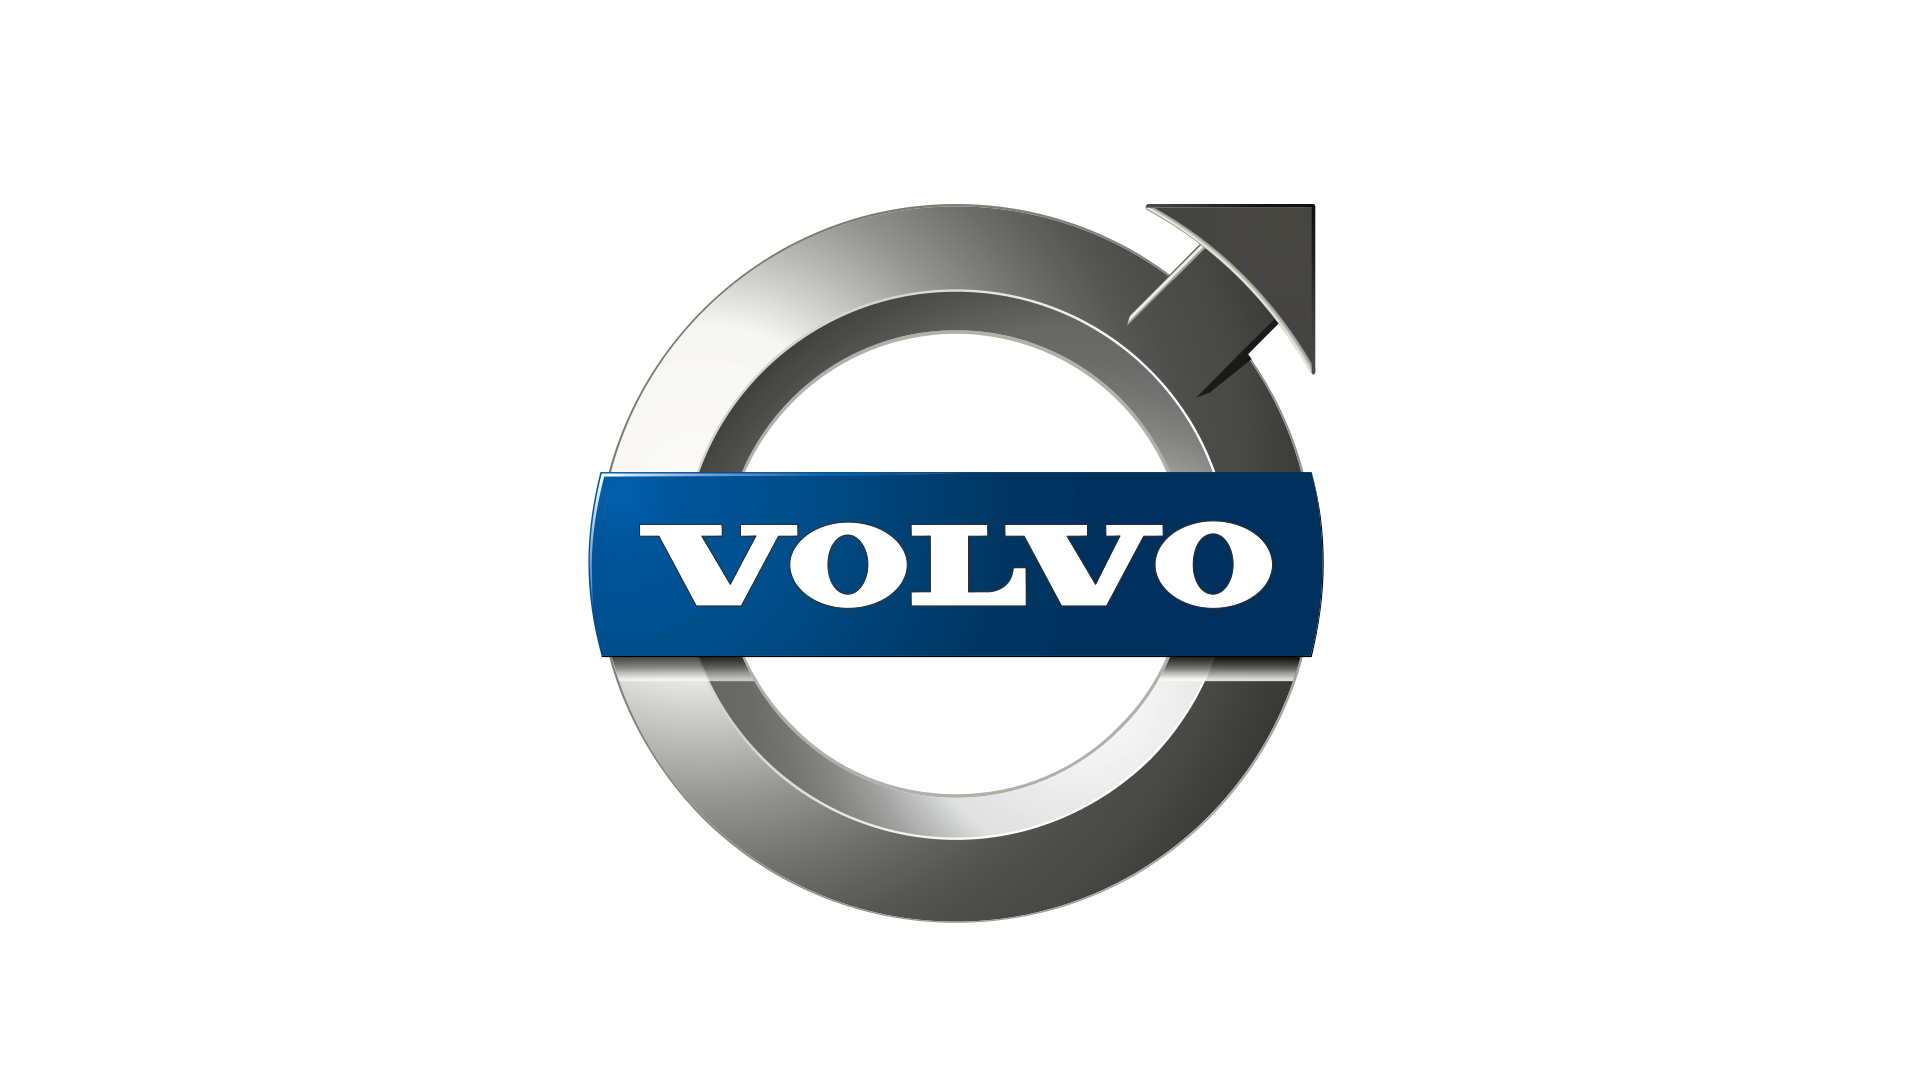 Volvo HD PNG